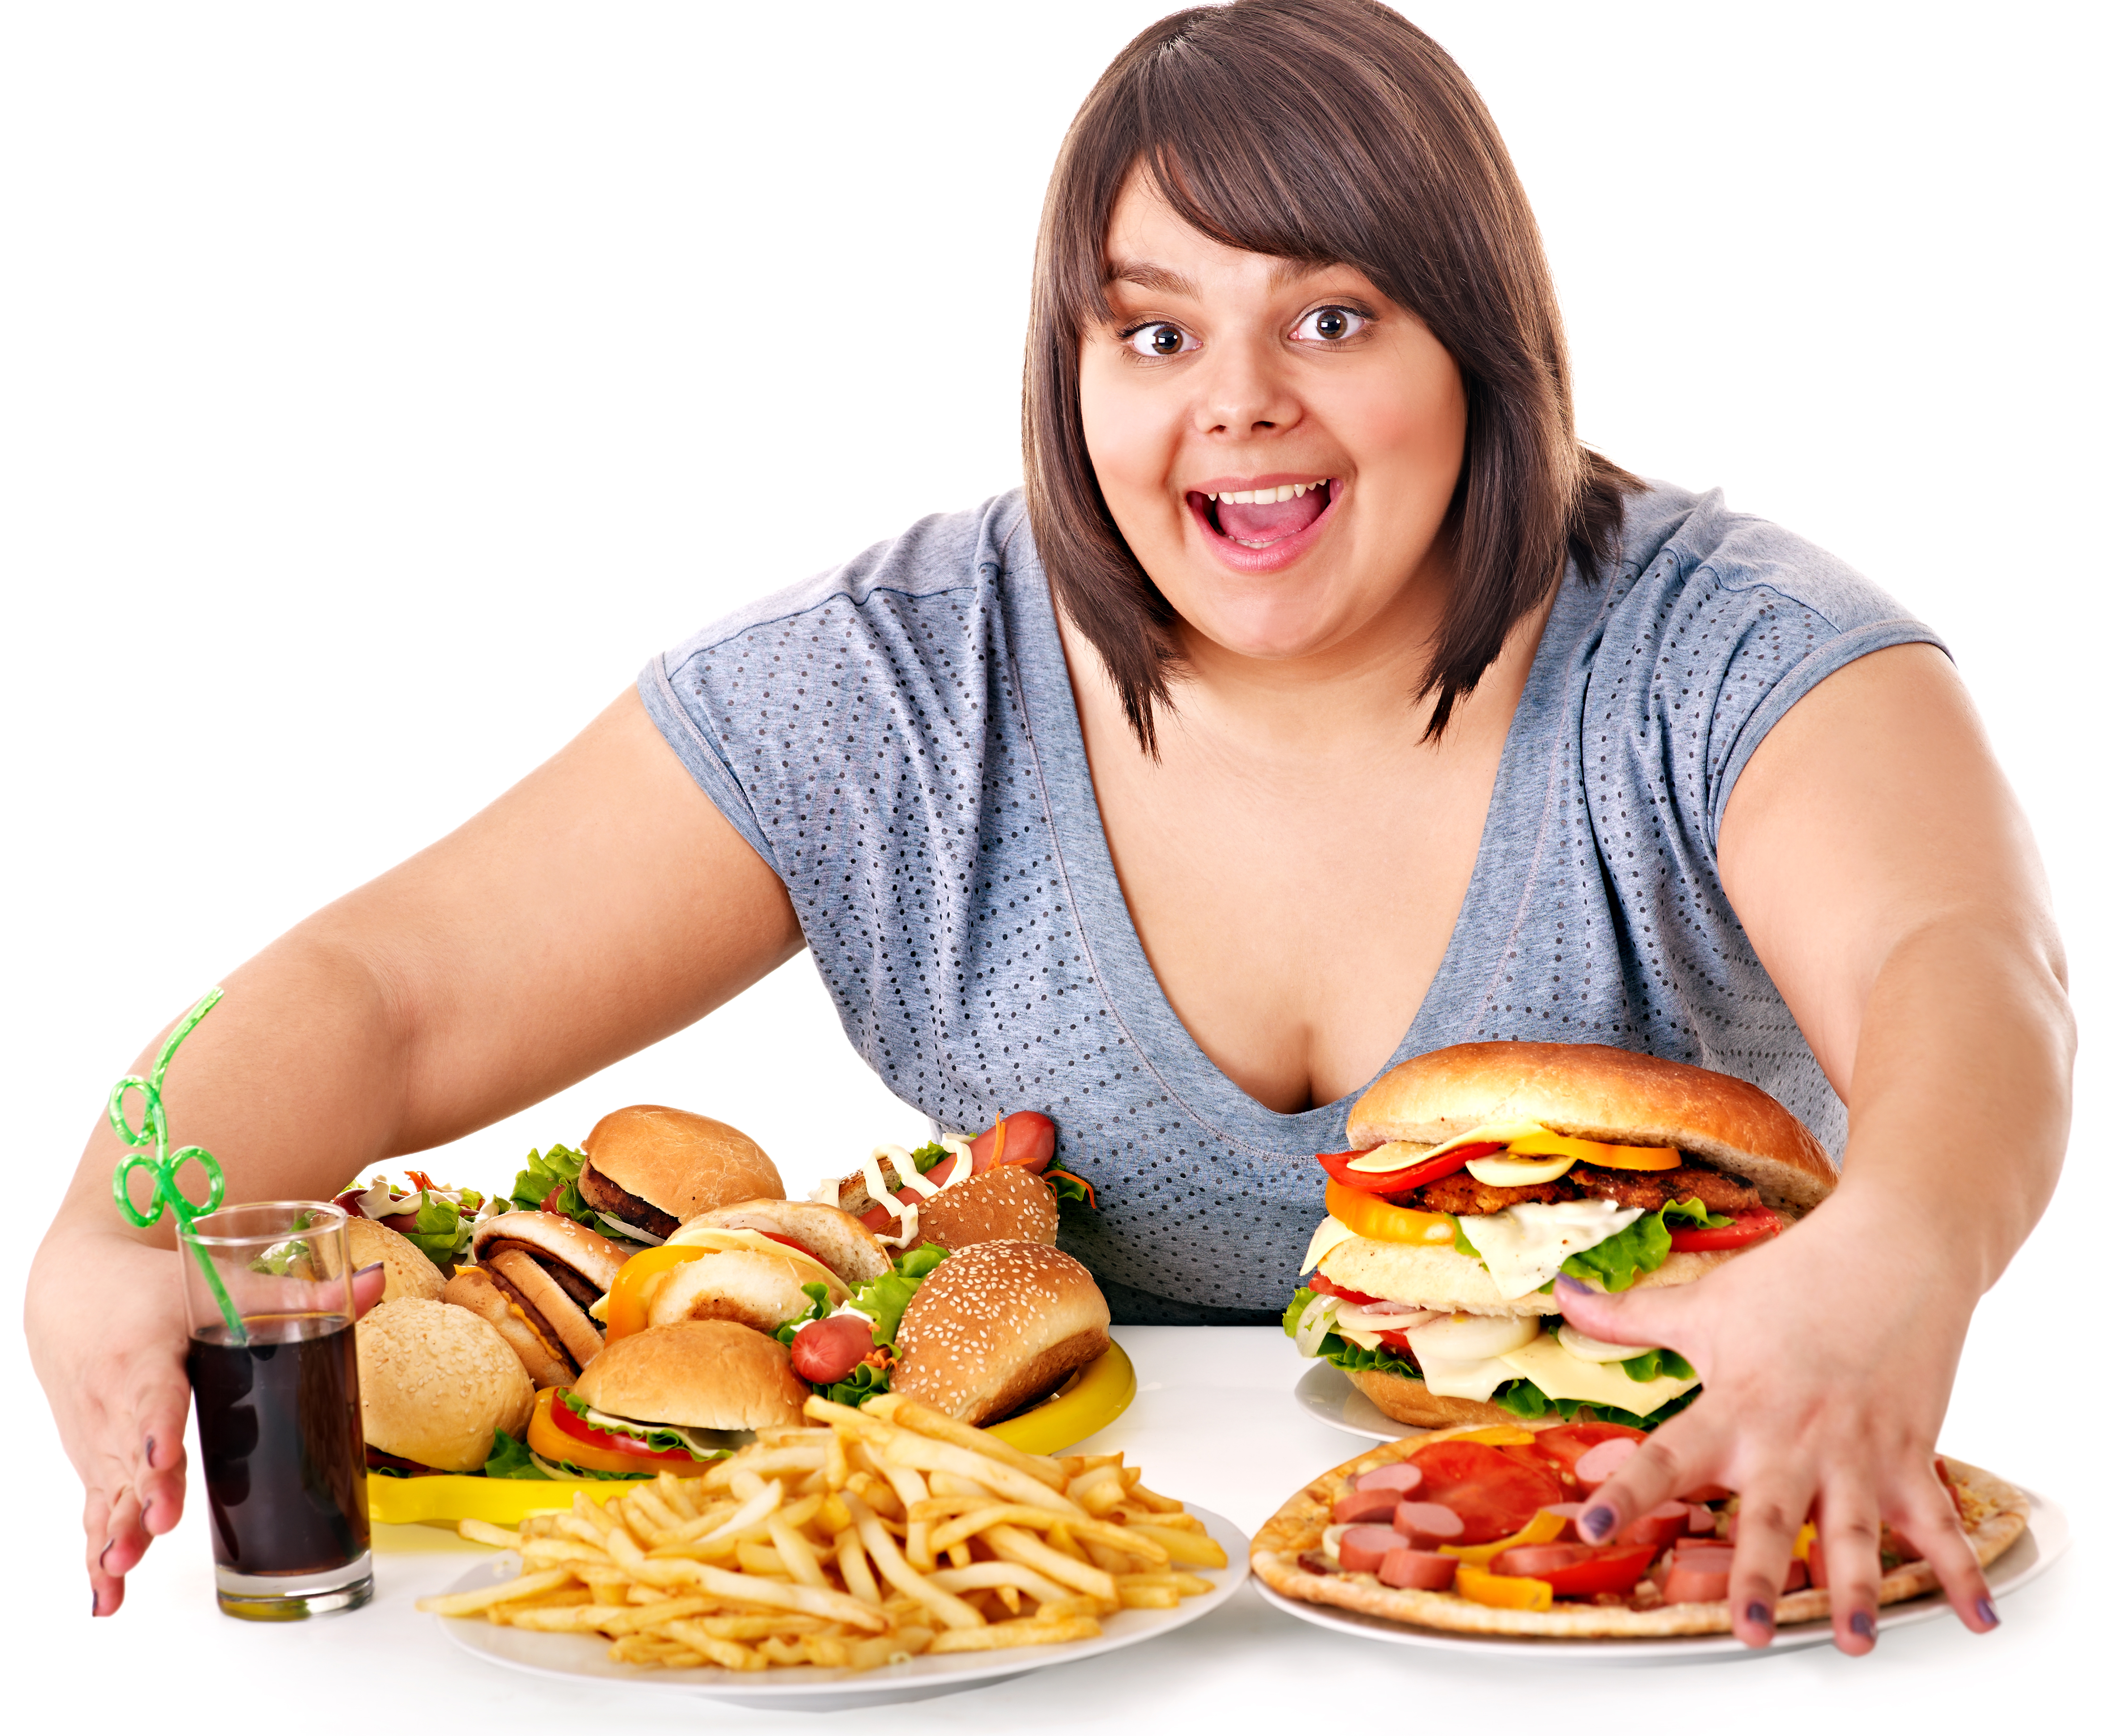 lose weight super fast unhealthy way